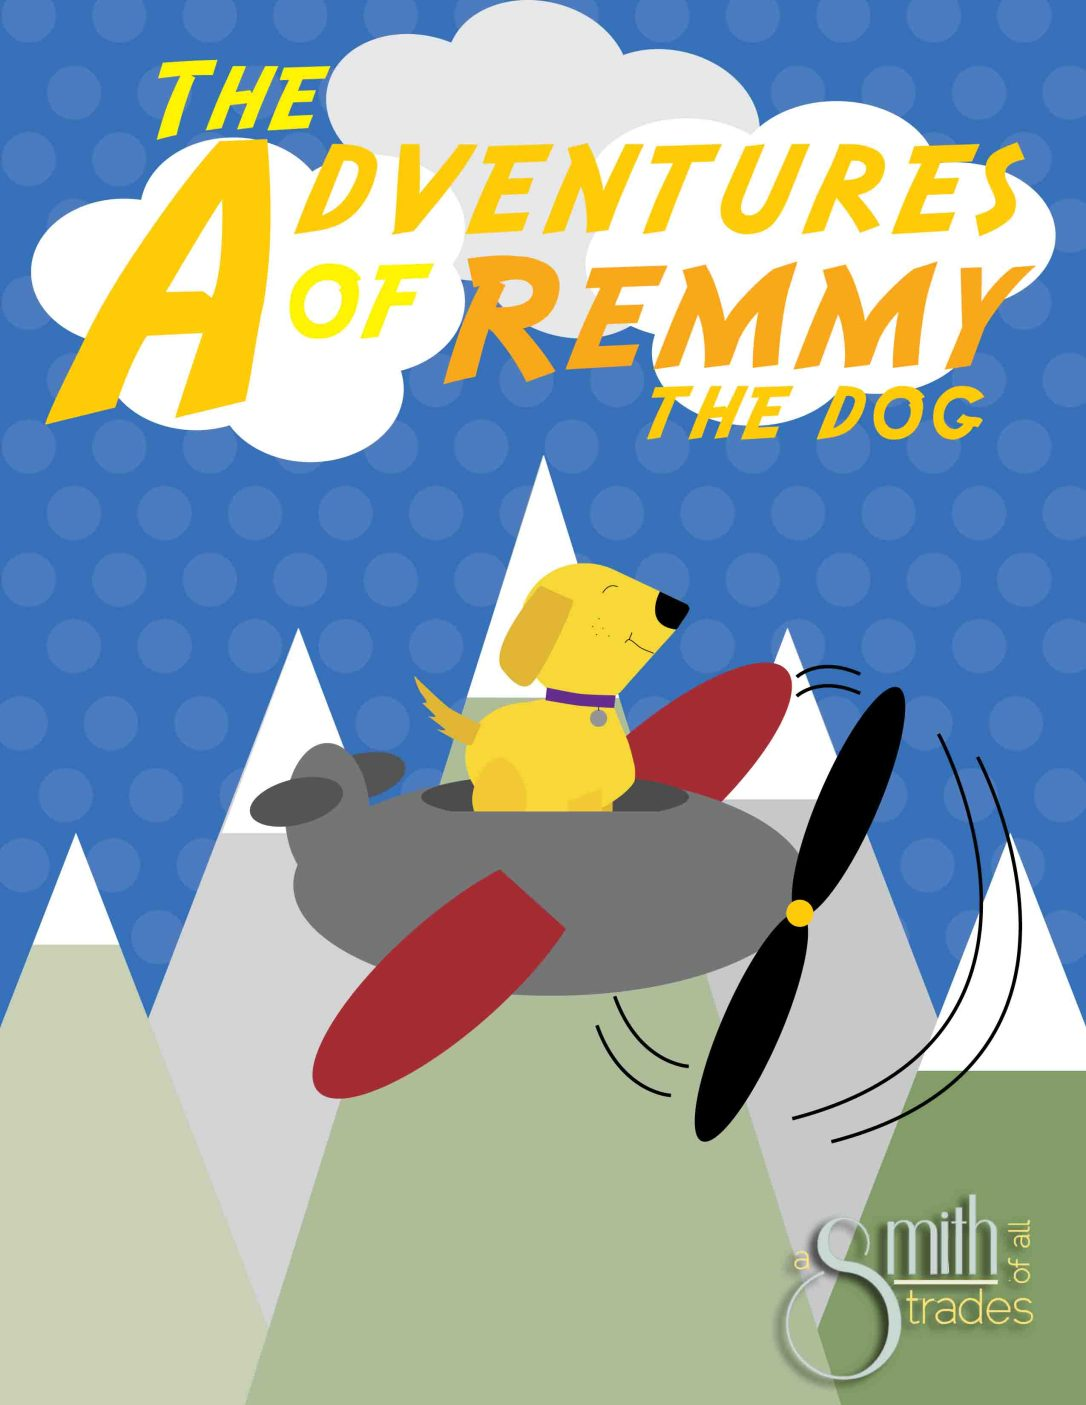 The Adventures of Remmy the Dog - for blog